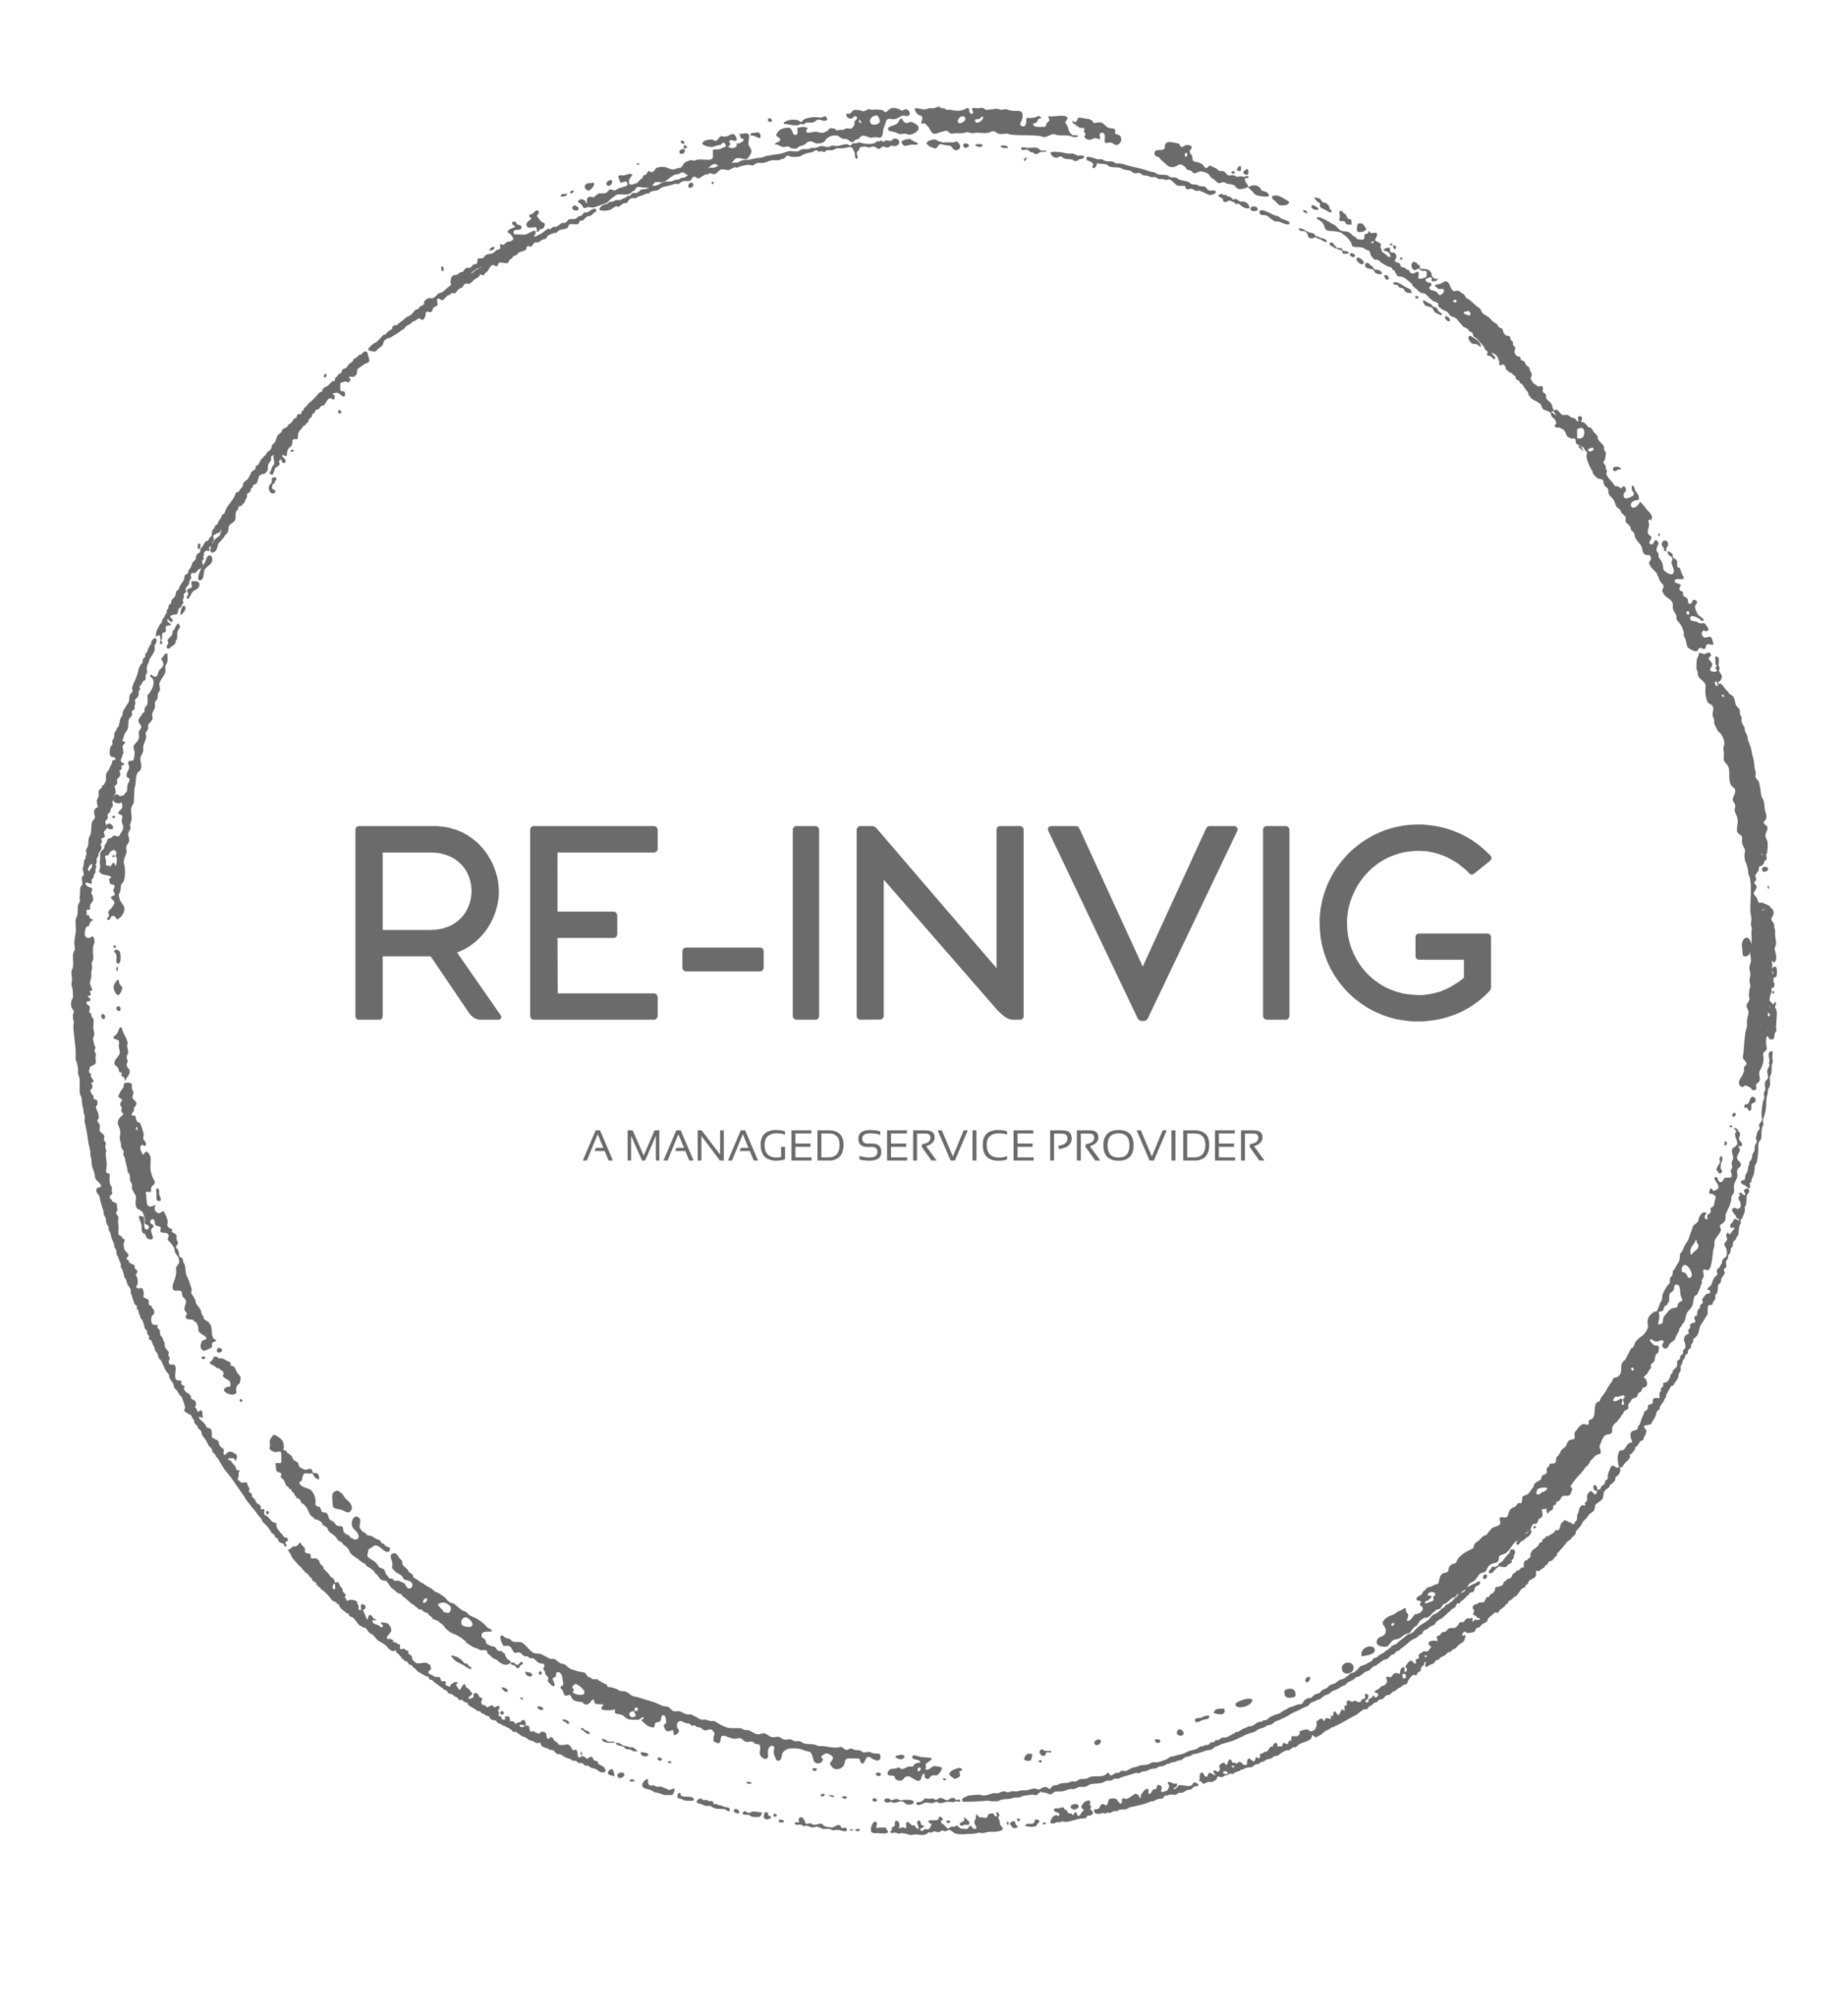 New Managed Services Provider RE-INVIG Launches Today